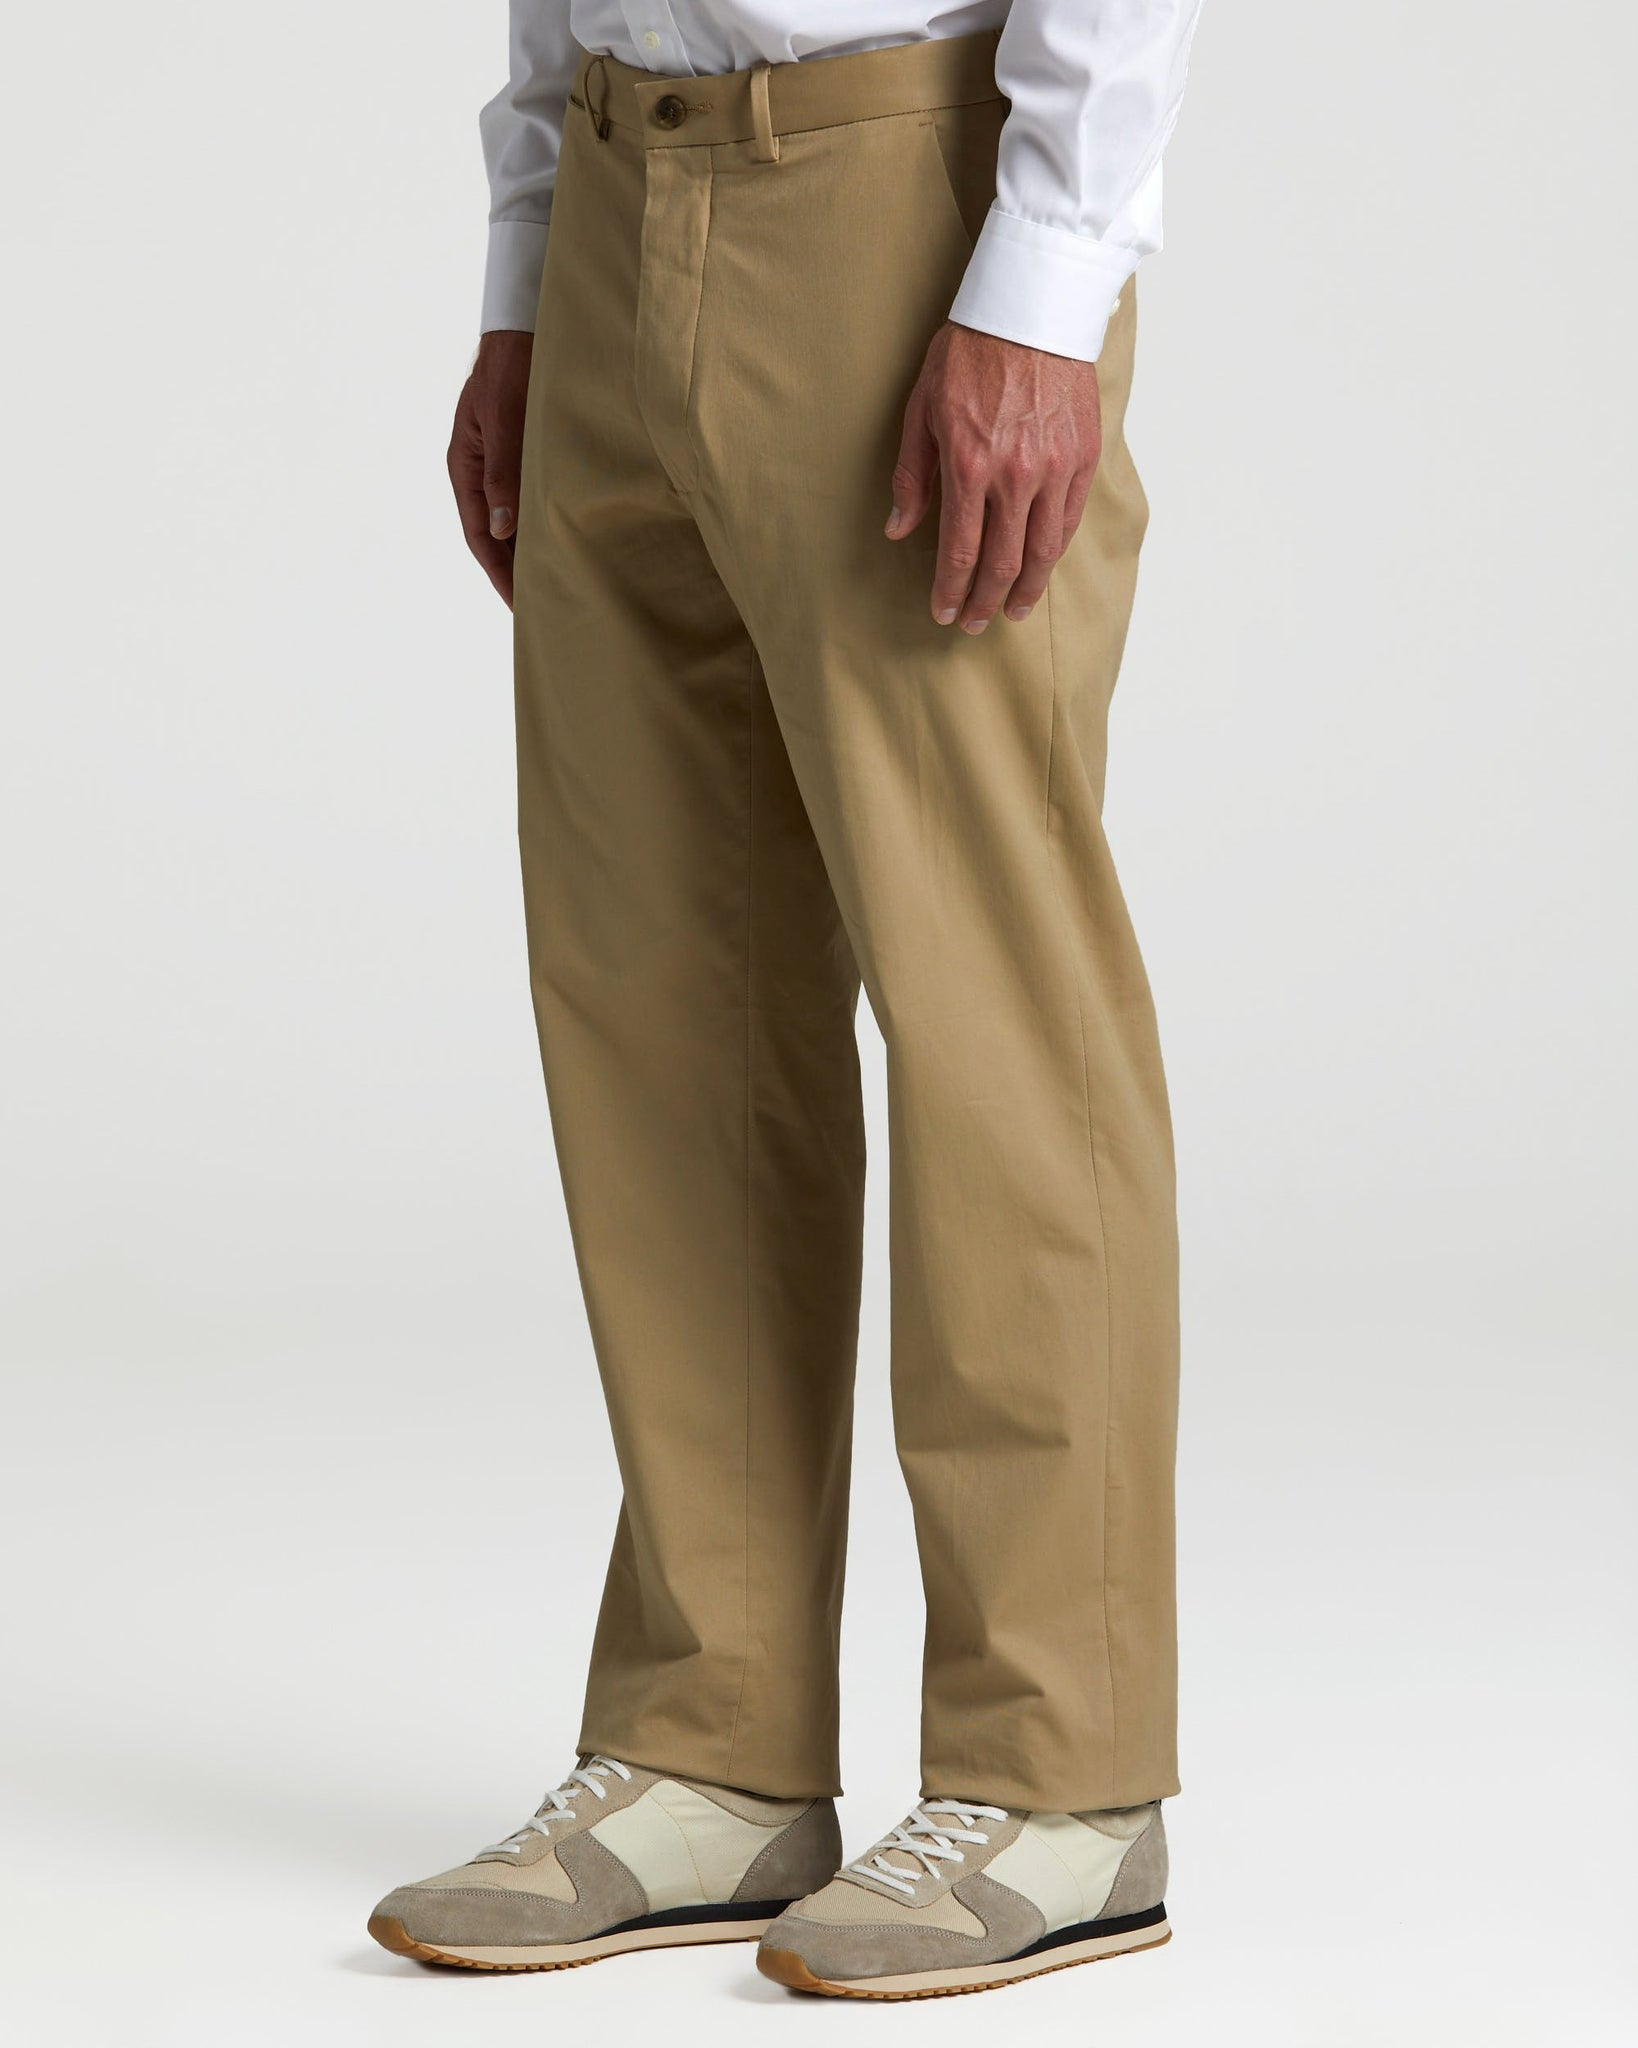 https://cdn.shopify.com/s/files/1/0249/6141/7252/files/Magna_Ready_-_Mens_-_Chino_-_Khaki-1-fade.mp4?4372